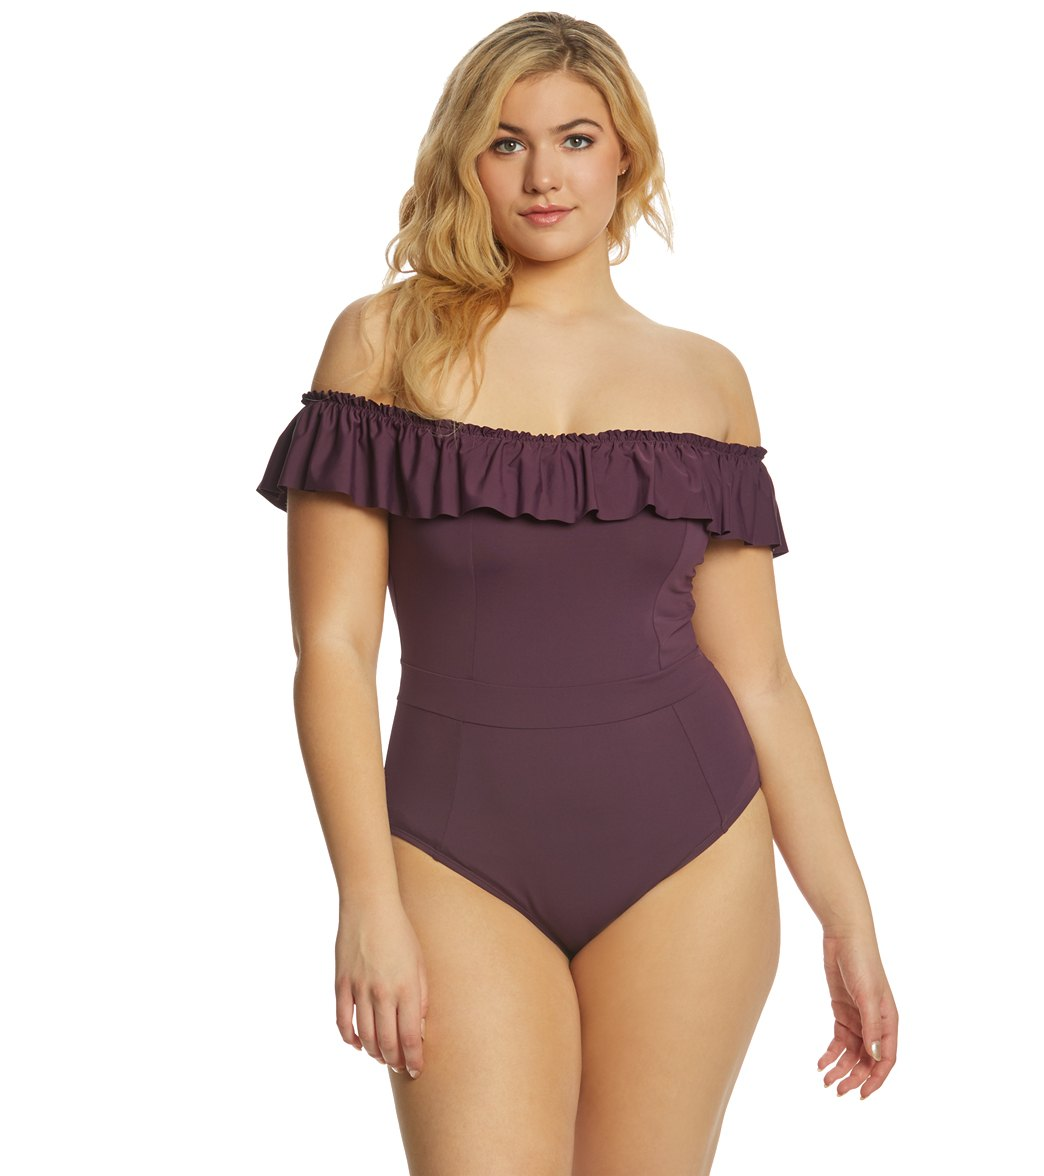 992d4cf89d BLEU Rod Beattie Plus Size Coast To Coast Off The Shoulder One Piece  Swimsuit at SwimOutlet.com - Free Shipping